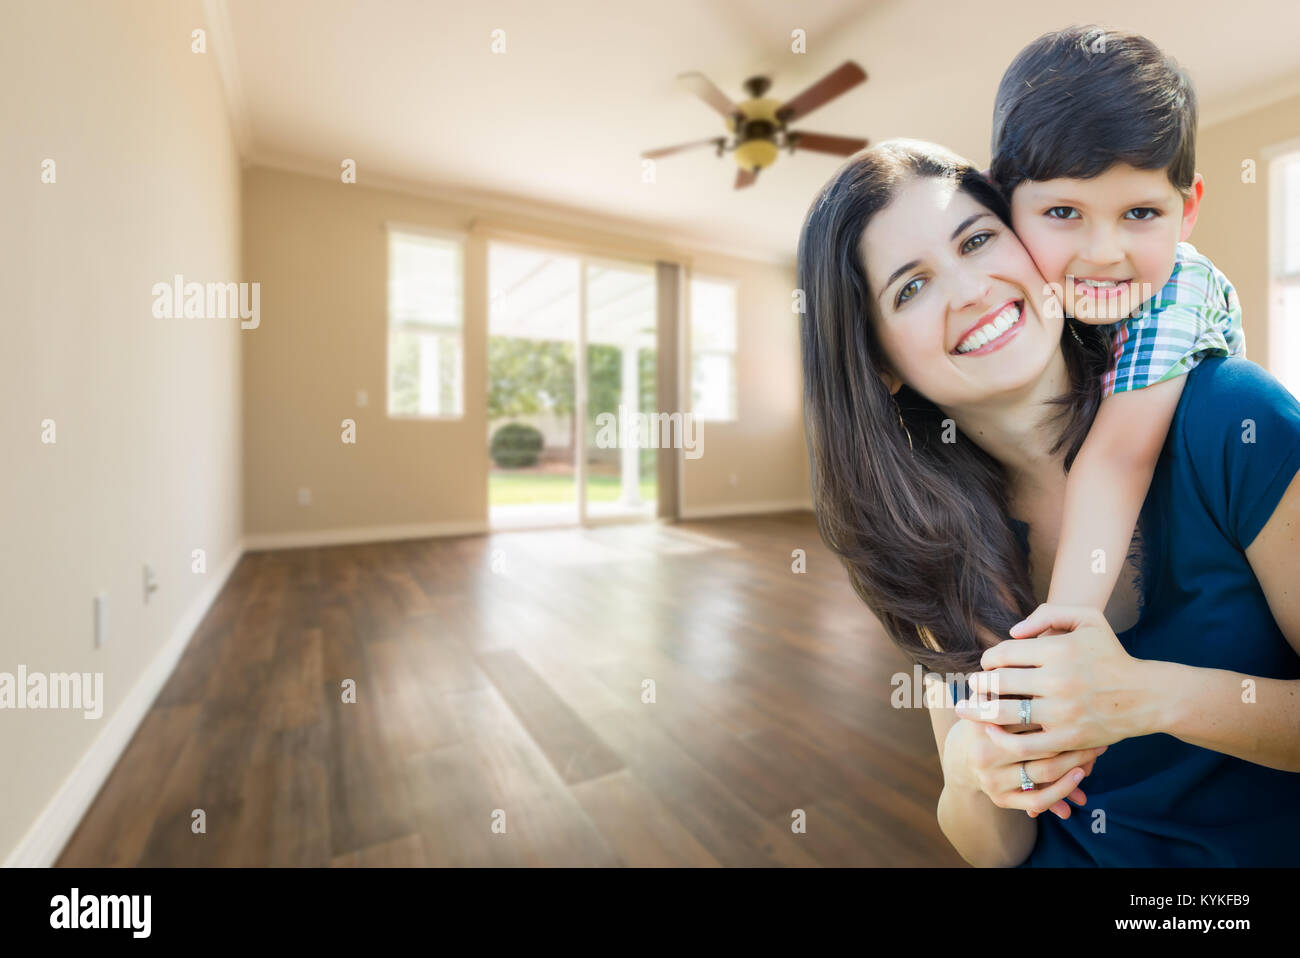 Young Mother and Son Inside Empty Room with Wood Floors. - Stock Image